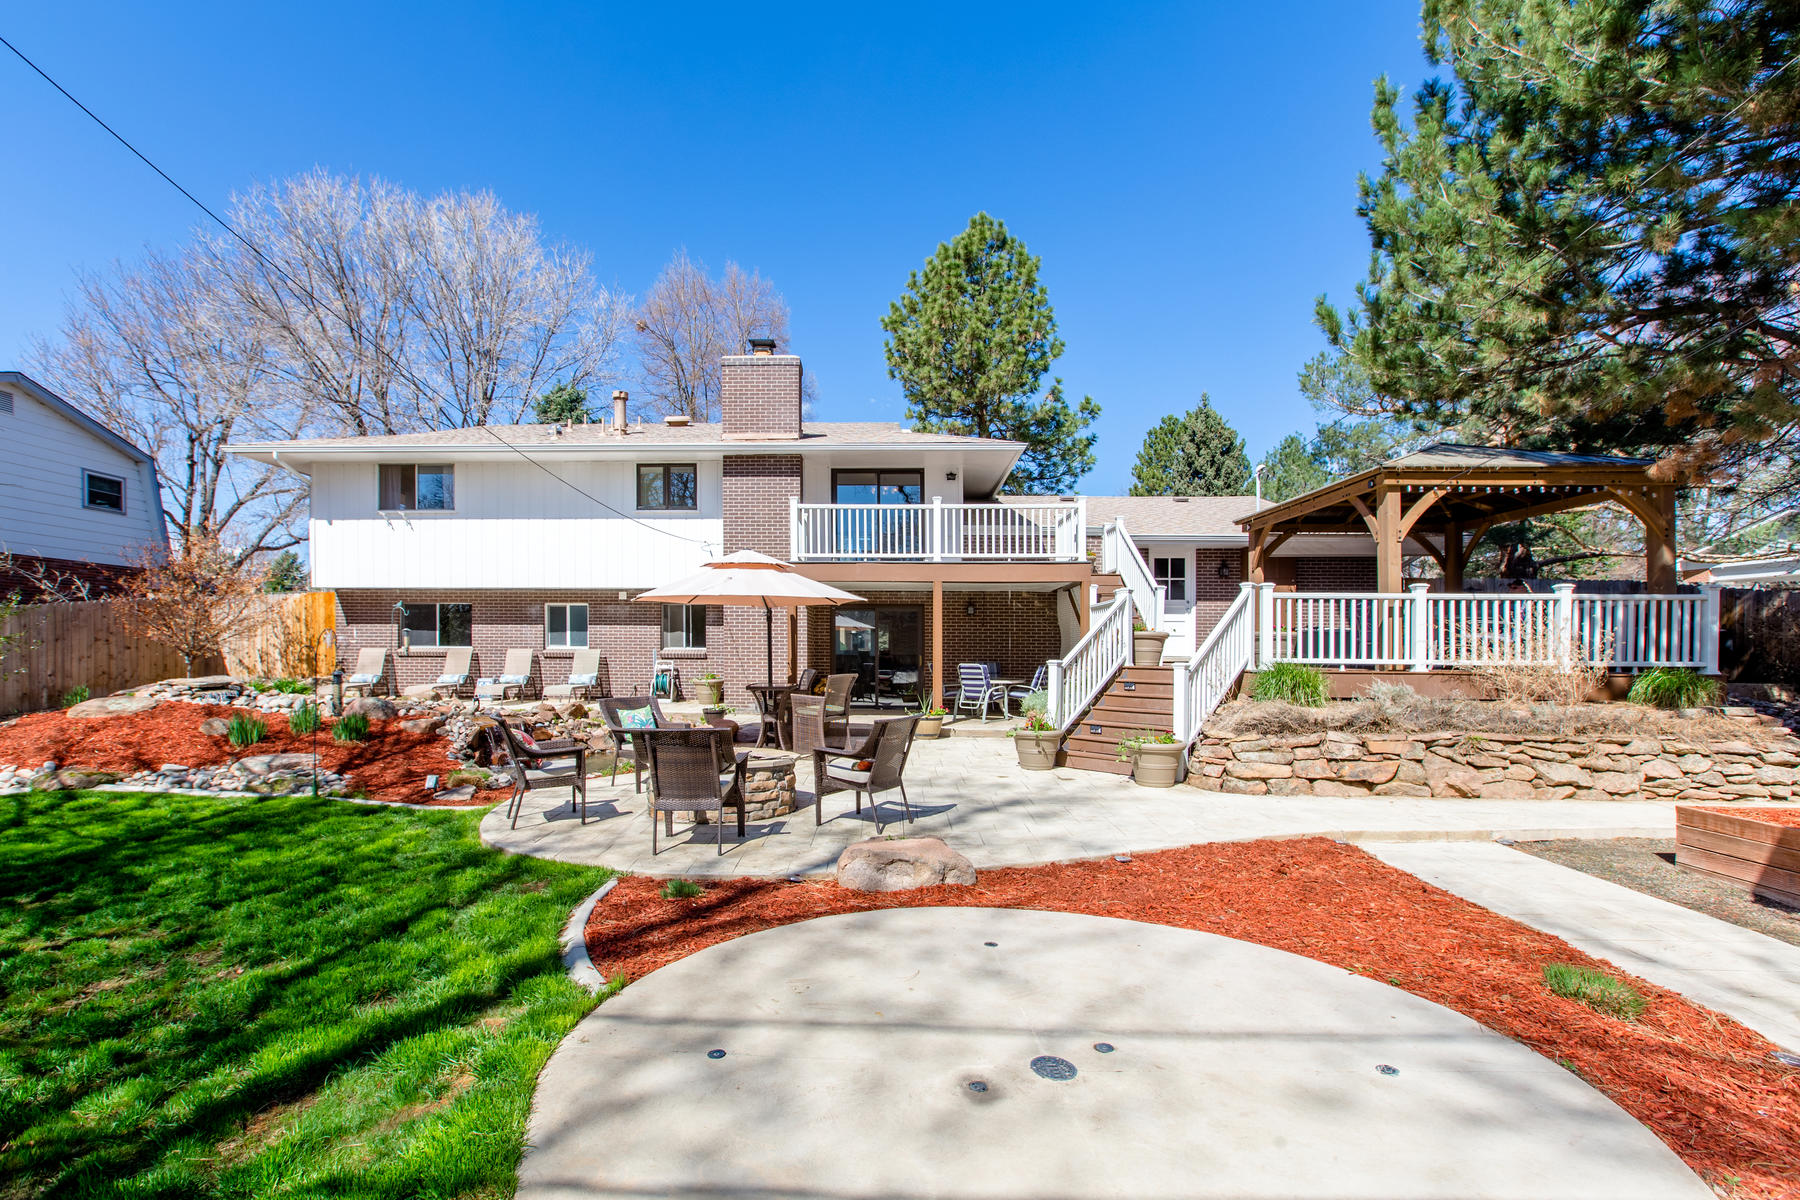 Single Family Homes for Sale at Exceptional Mid-Century Stunner on a Premiere Lot 1164 Par Road Broomfield, Colorado 80020 United States